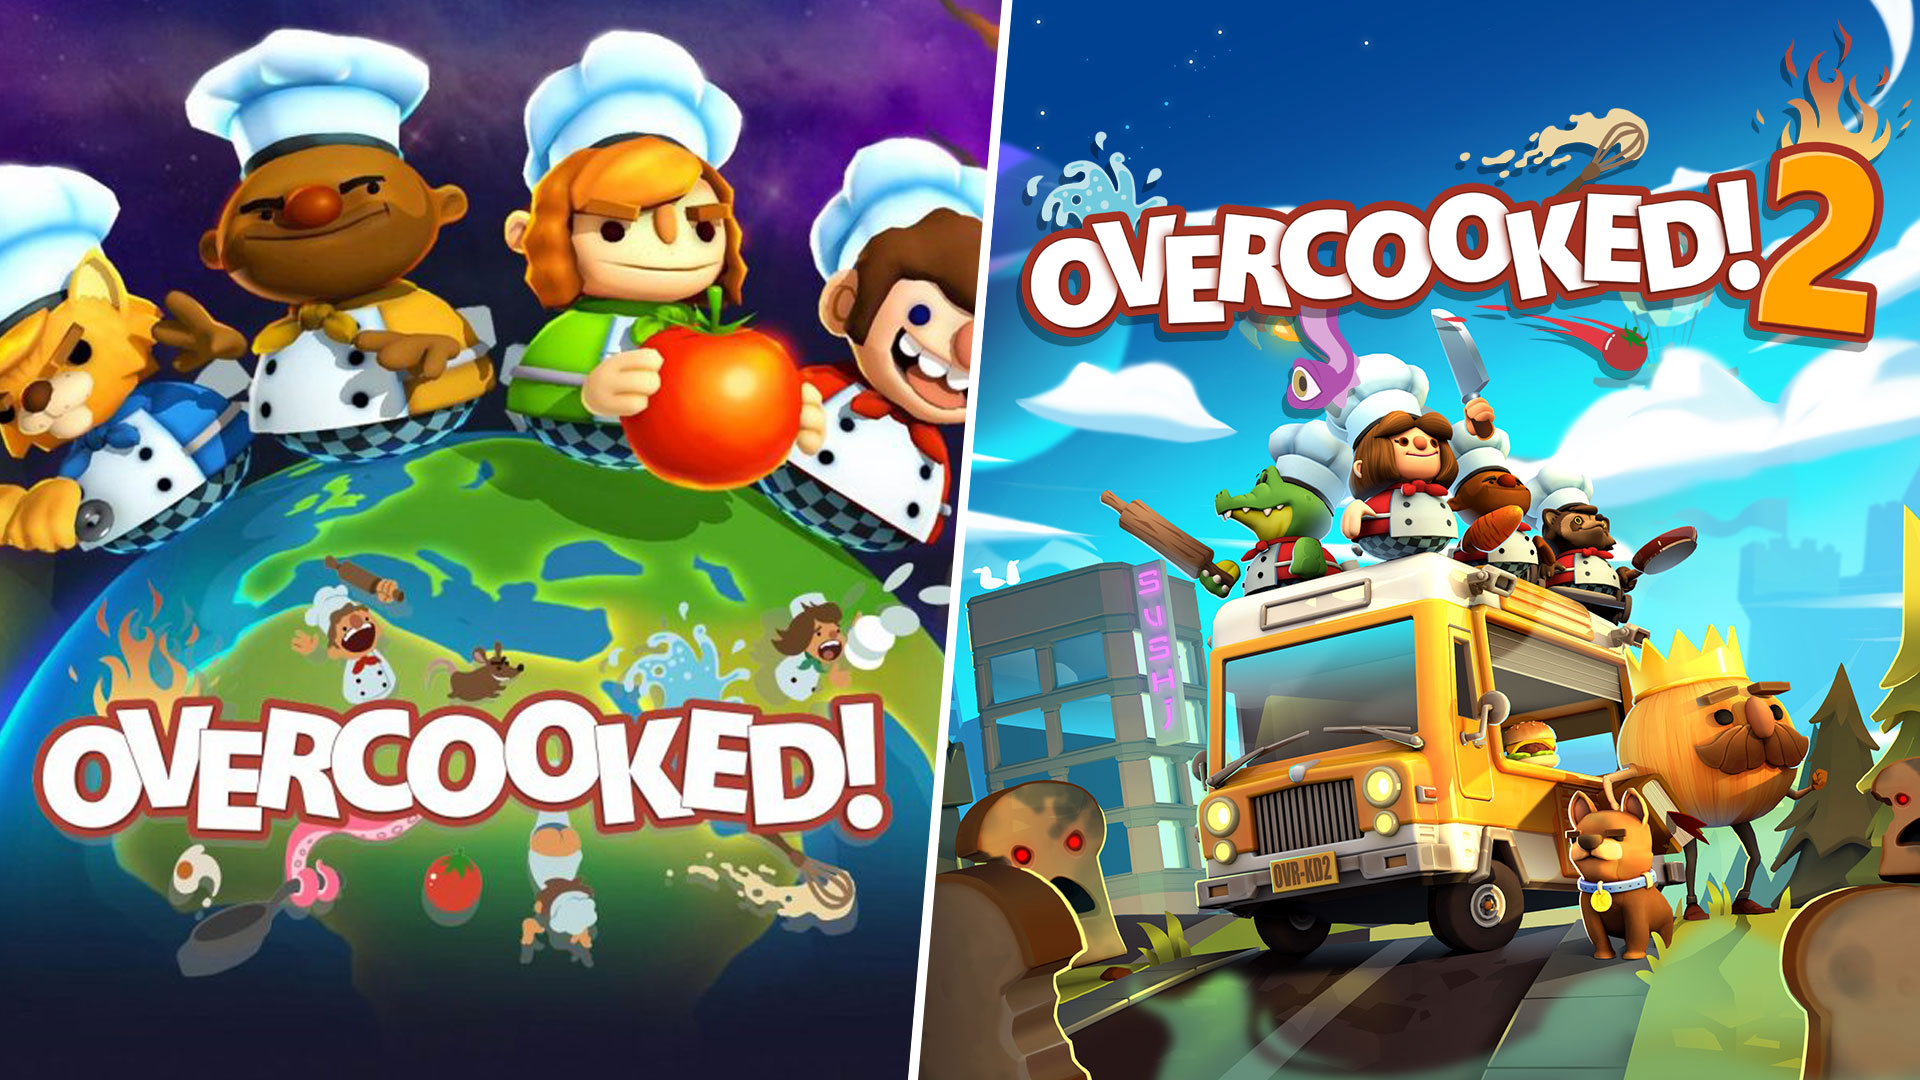 FREE DLC, Gourmet Edition Steam launch, PLUS savings on Overcooked! and Overcooked! 2